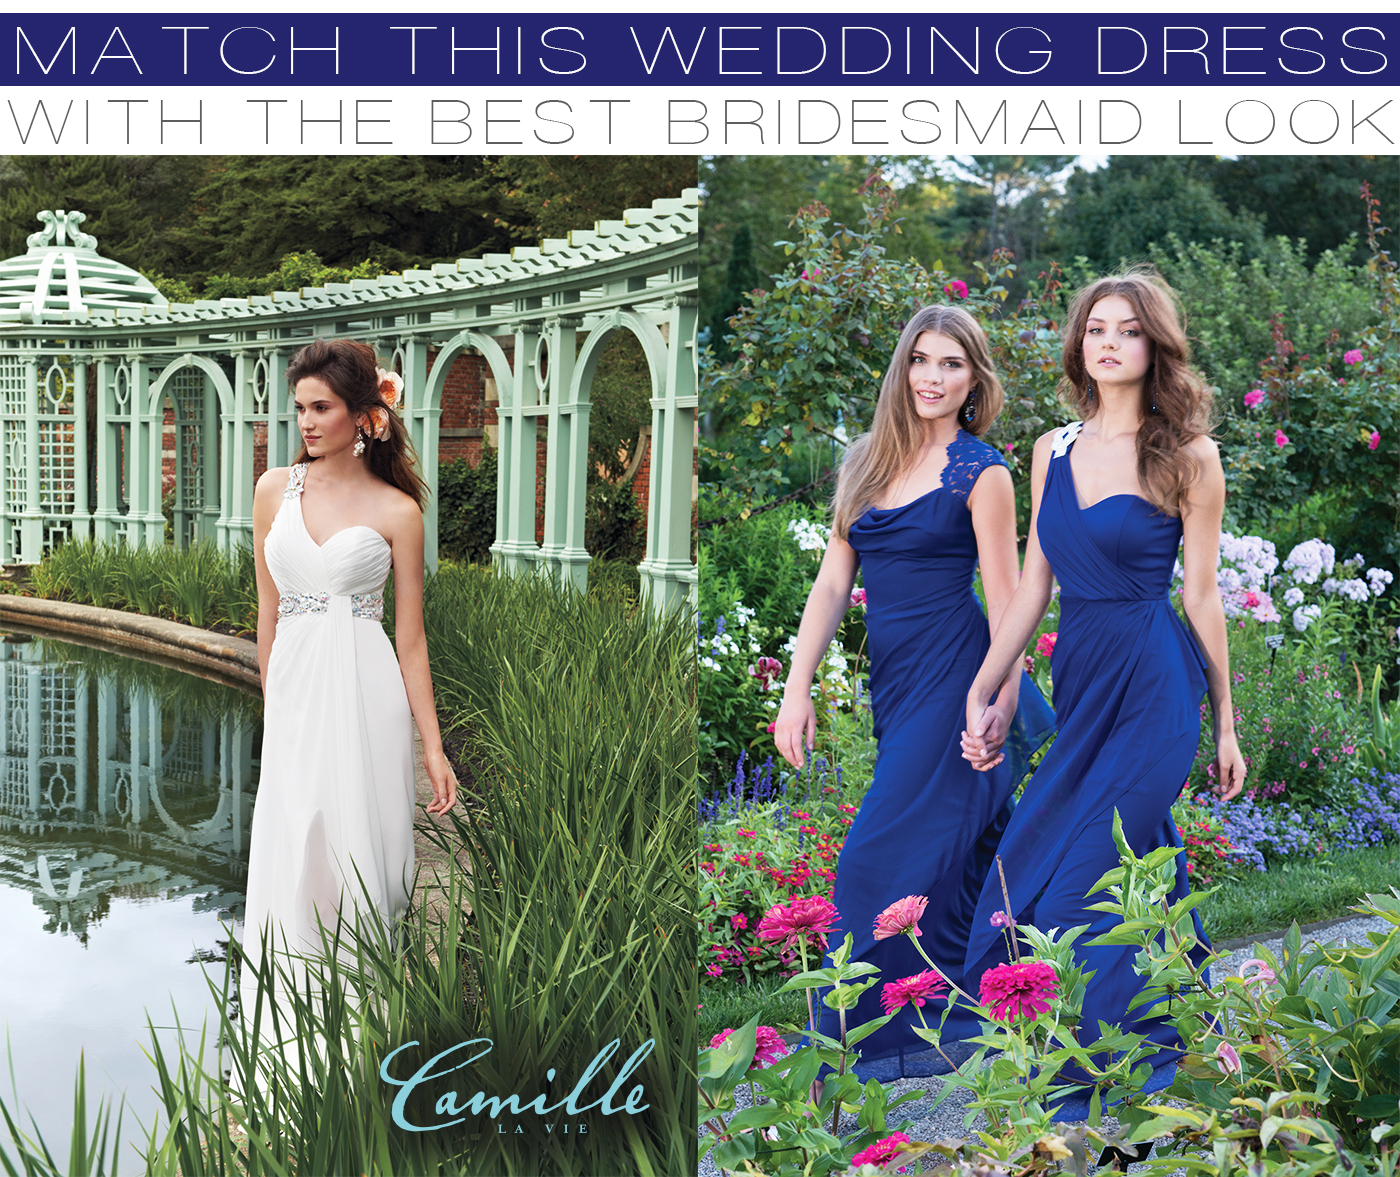 Royal blue bridesmaid dresses to match your wedding gown Camille